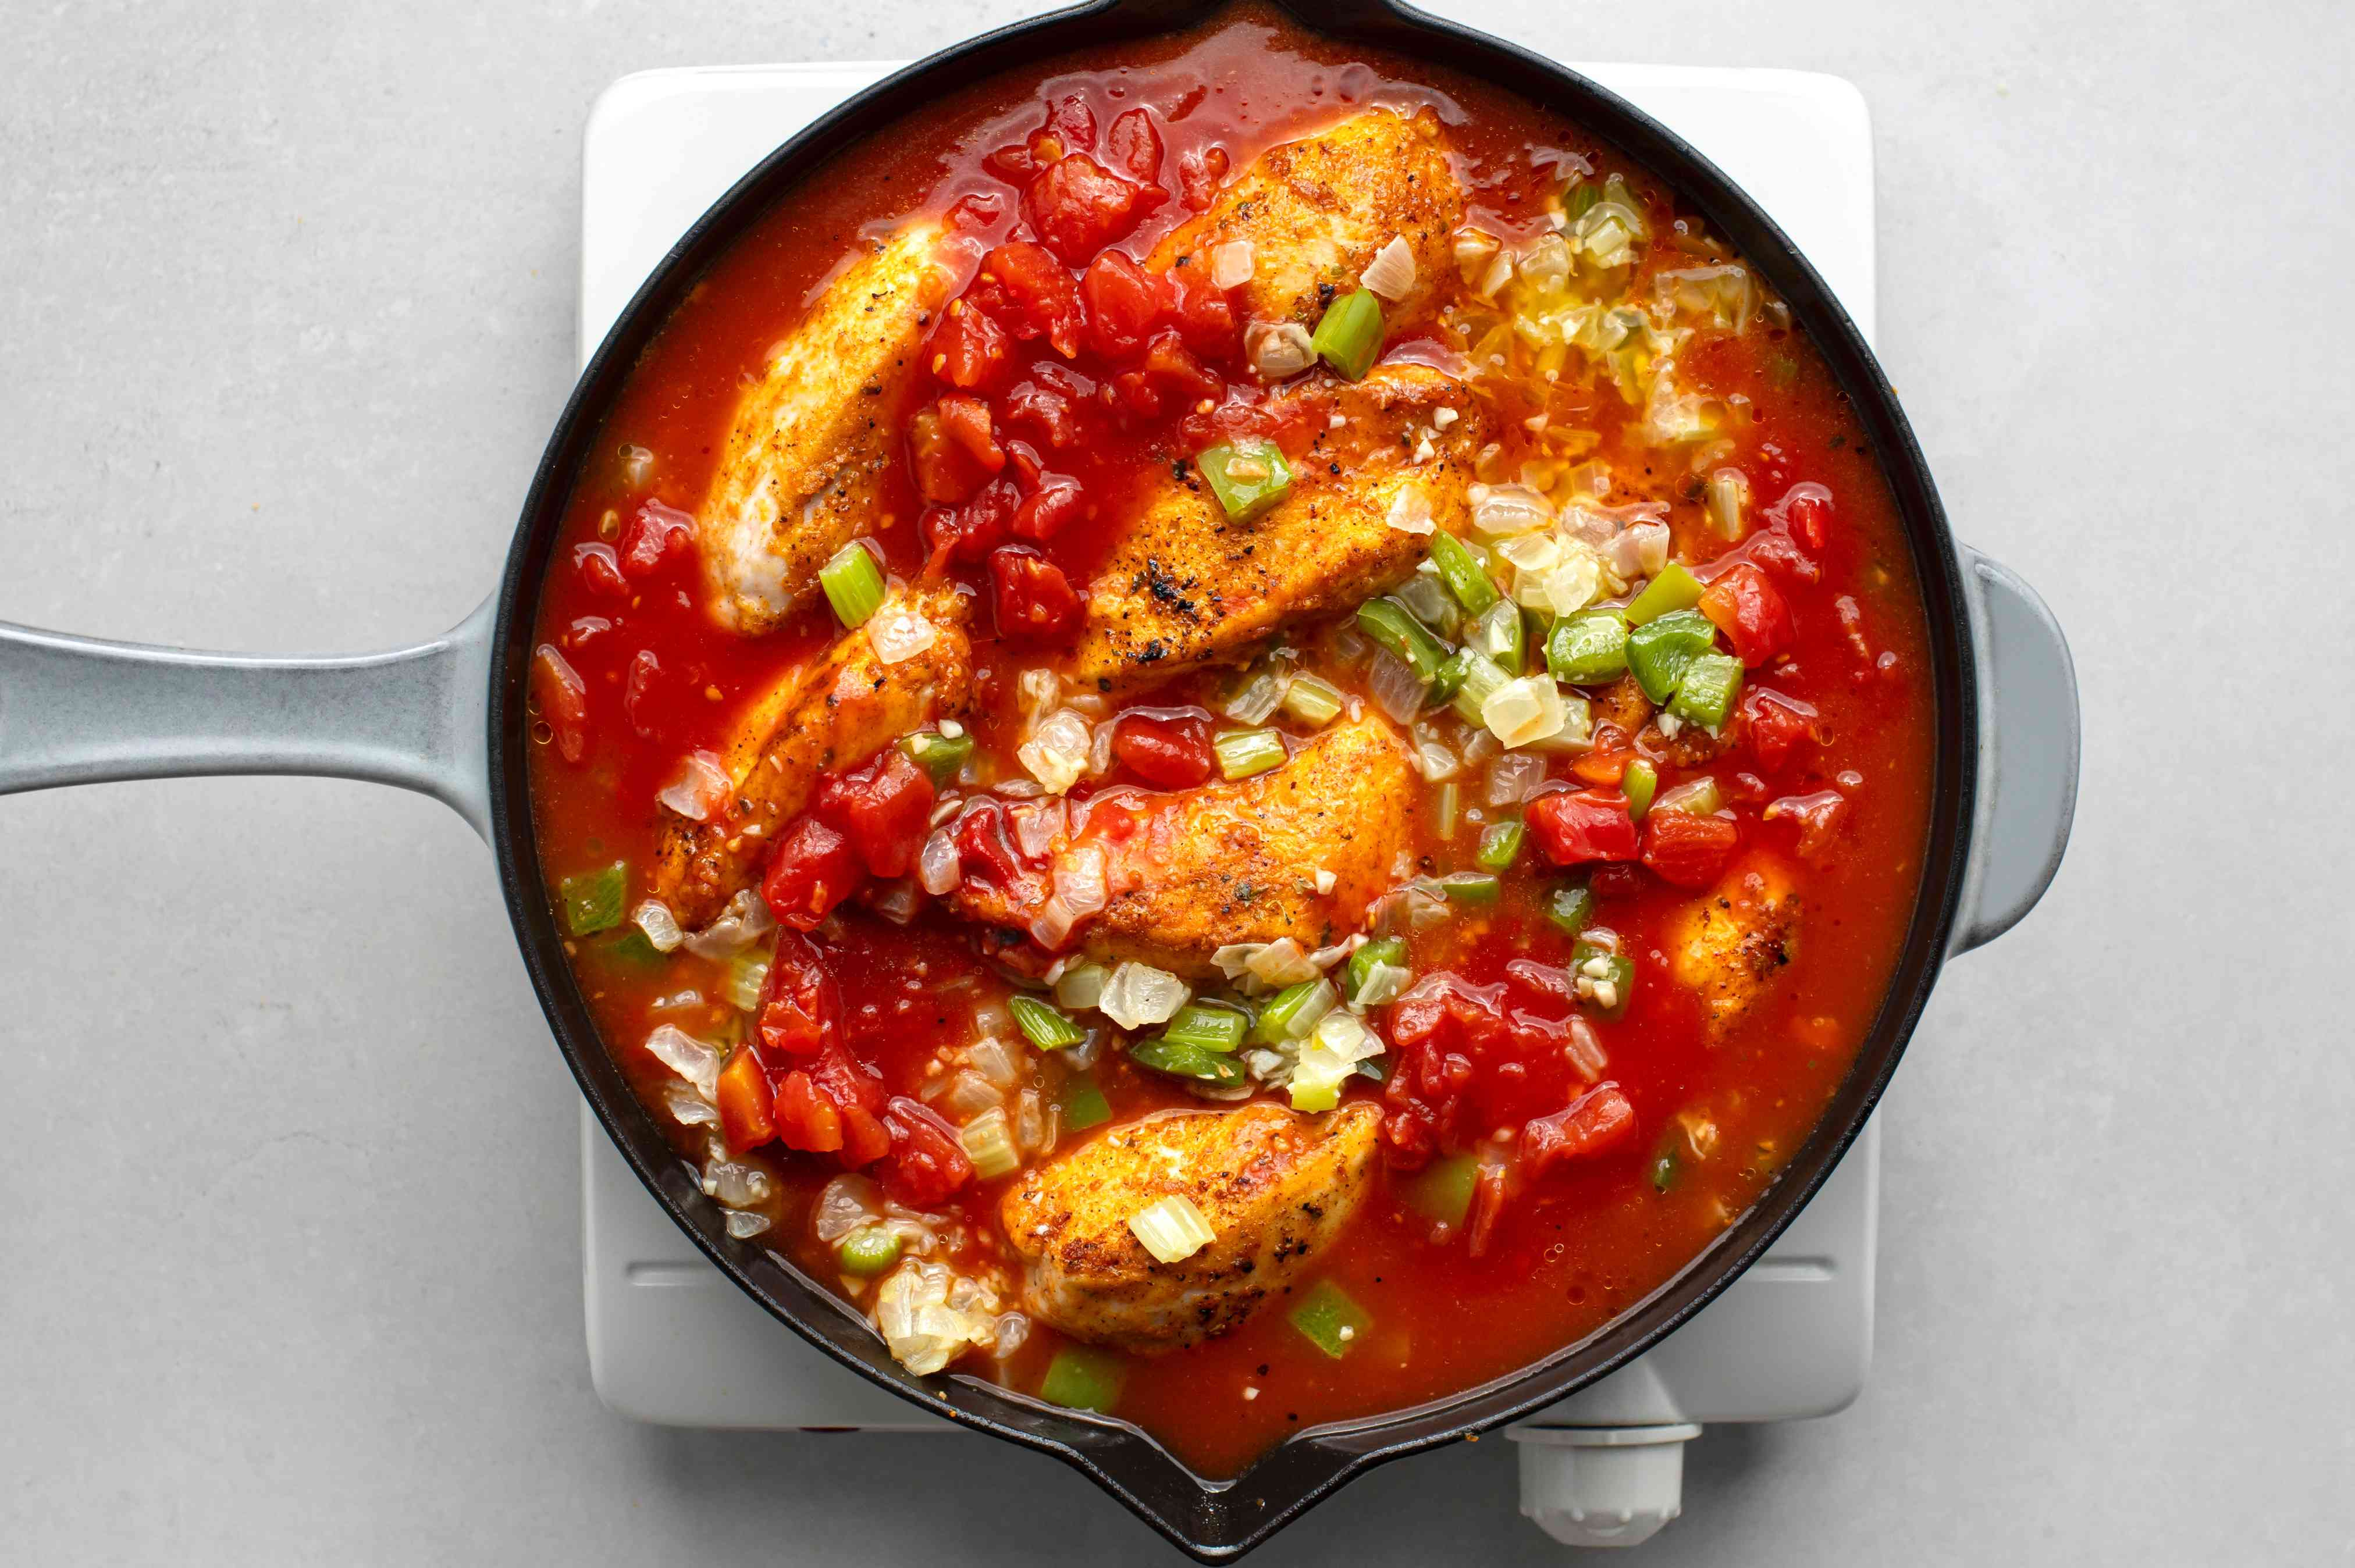 add chicken broth, tomatoes, and tomato paste to the chicken and vegetables in the skillet